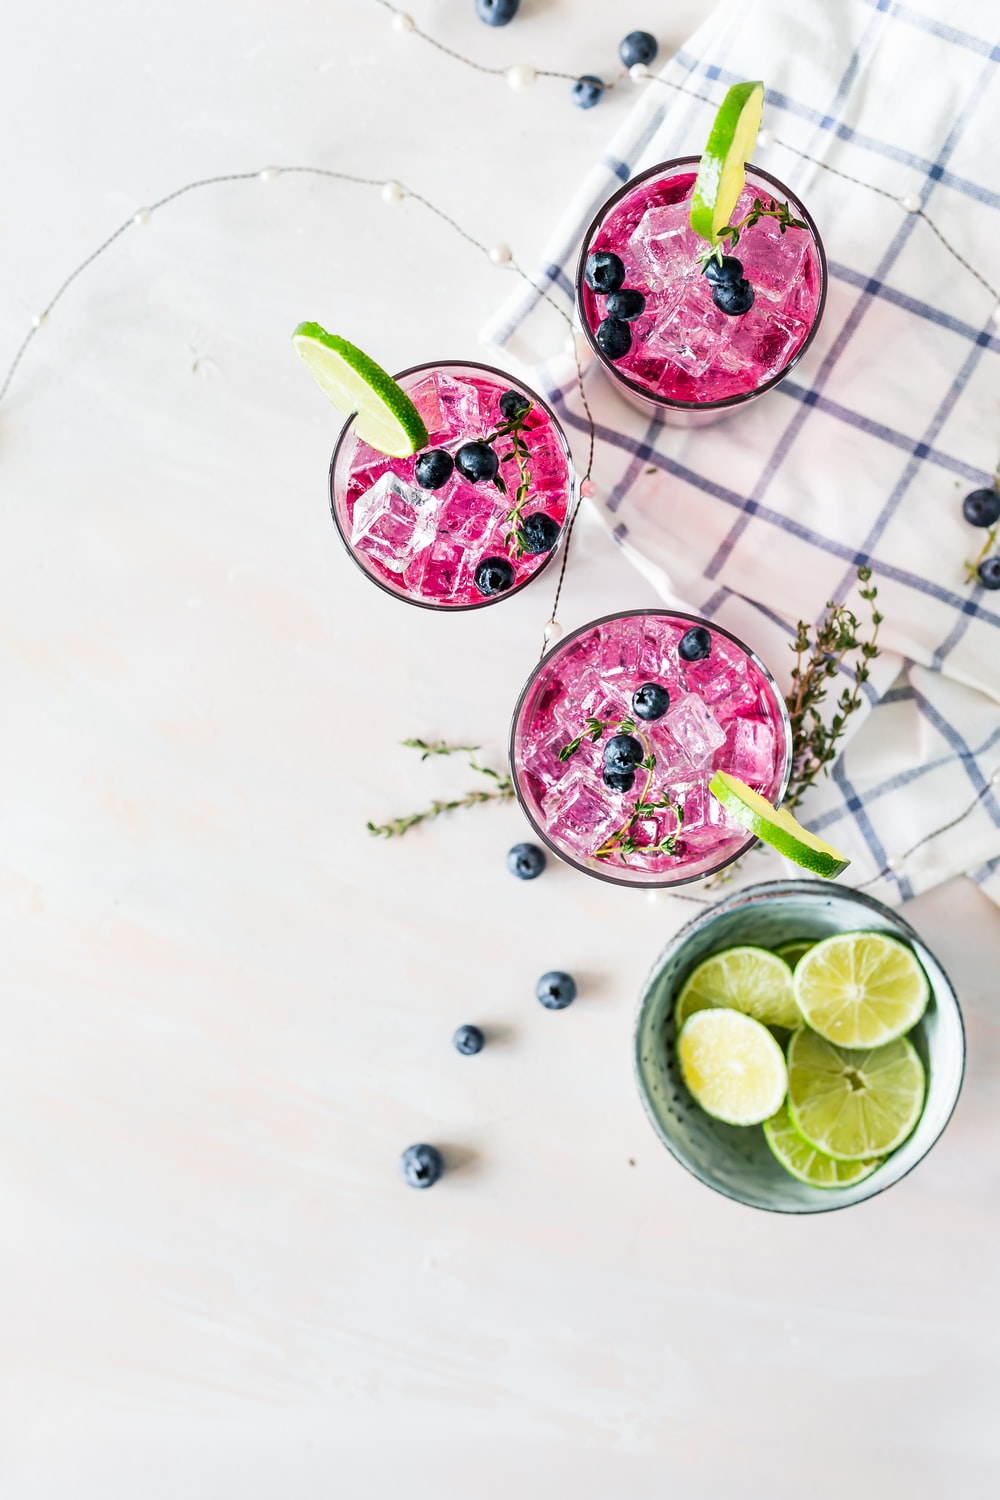 pink liquids served in drinking glasses